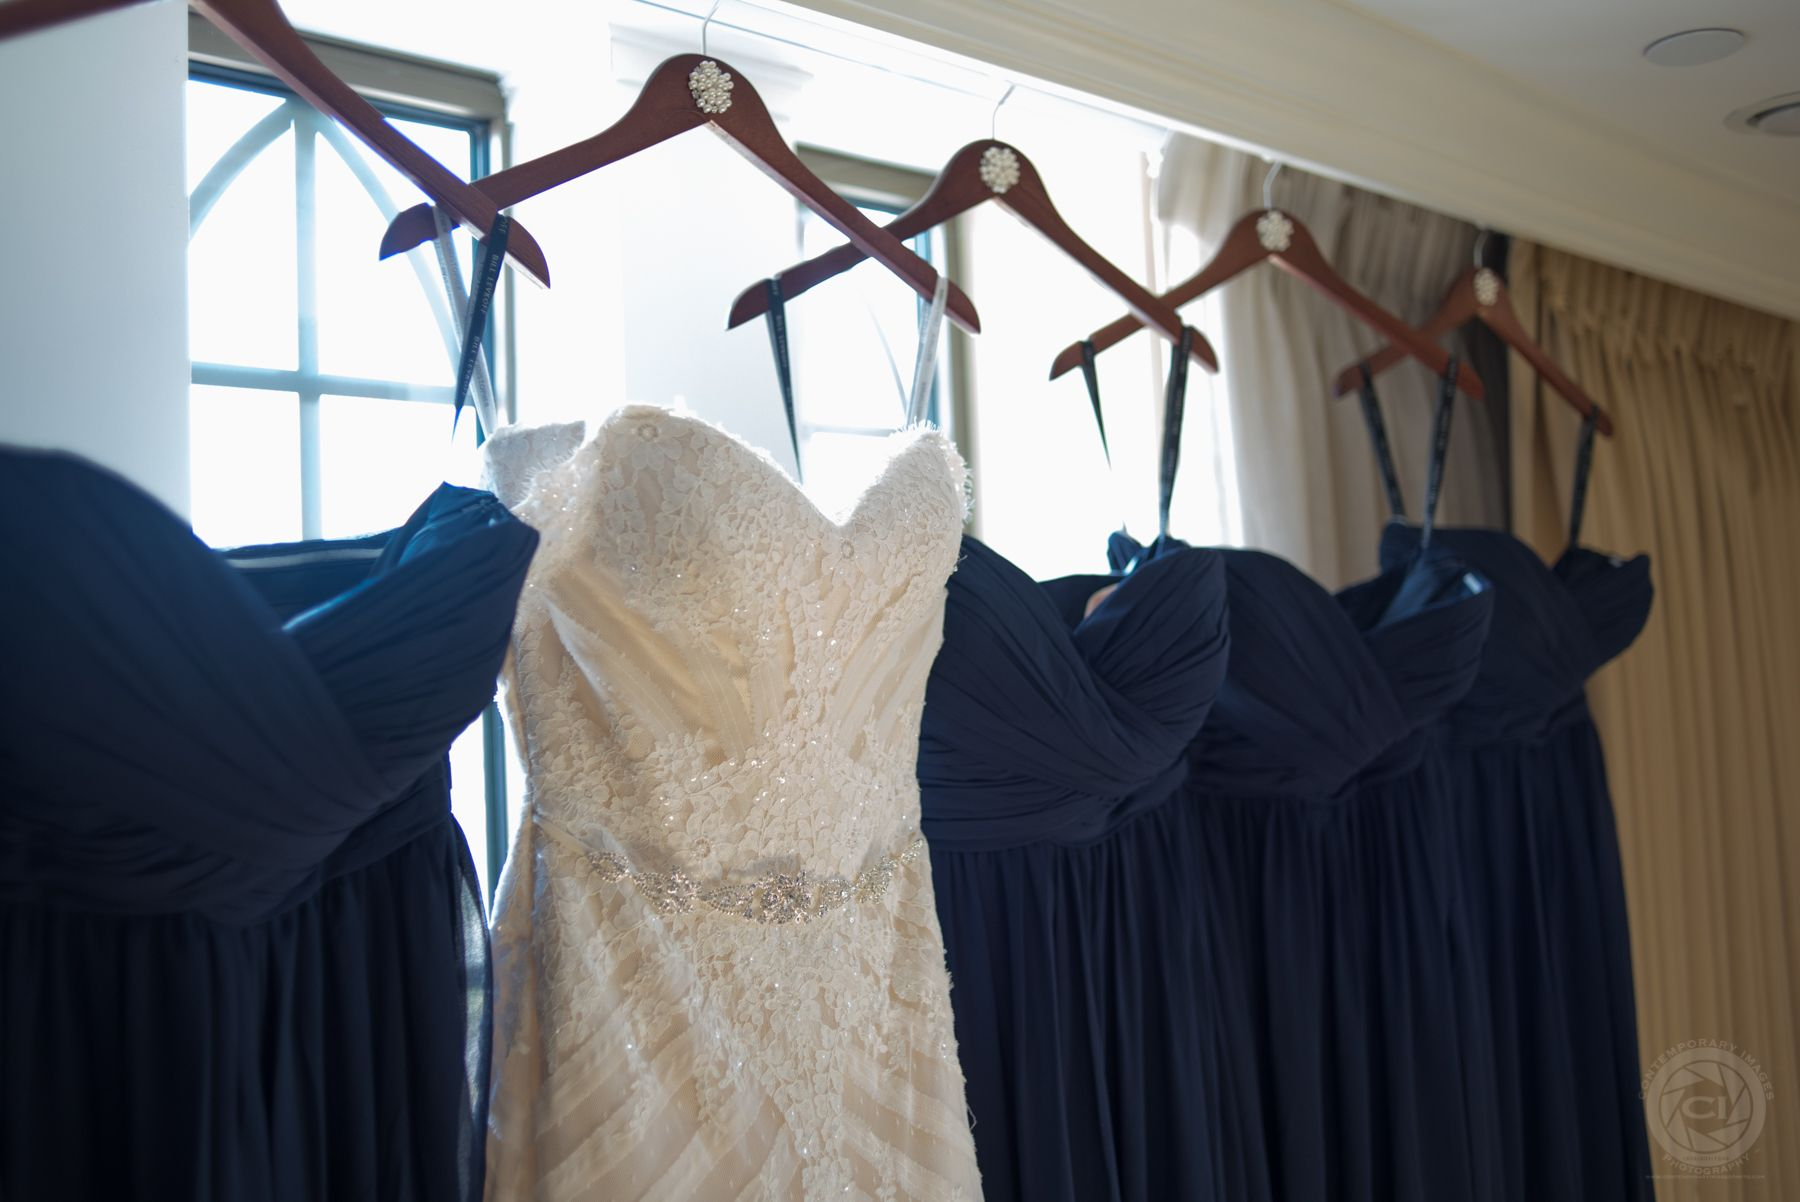 Navy blue chiffon bridesmaid dresses hanging next to wedding gown Loved the matching hangers for the bride and bridesmaids